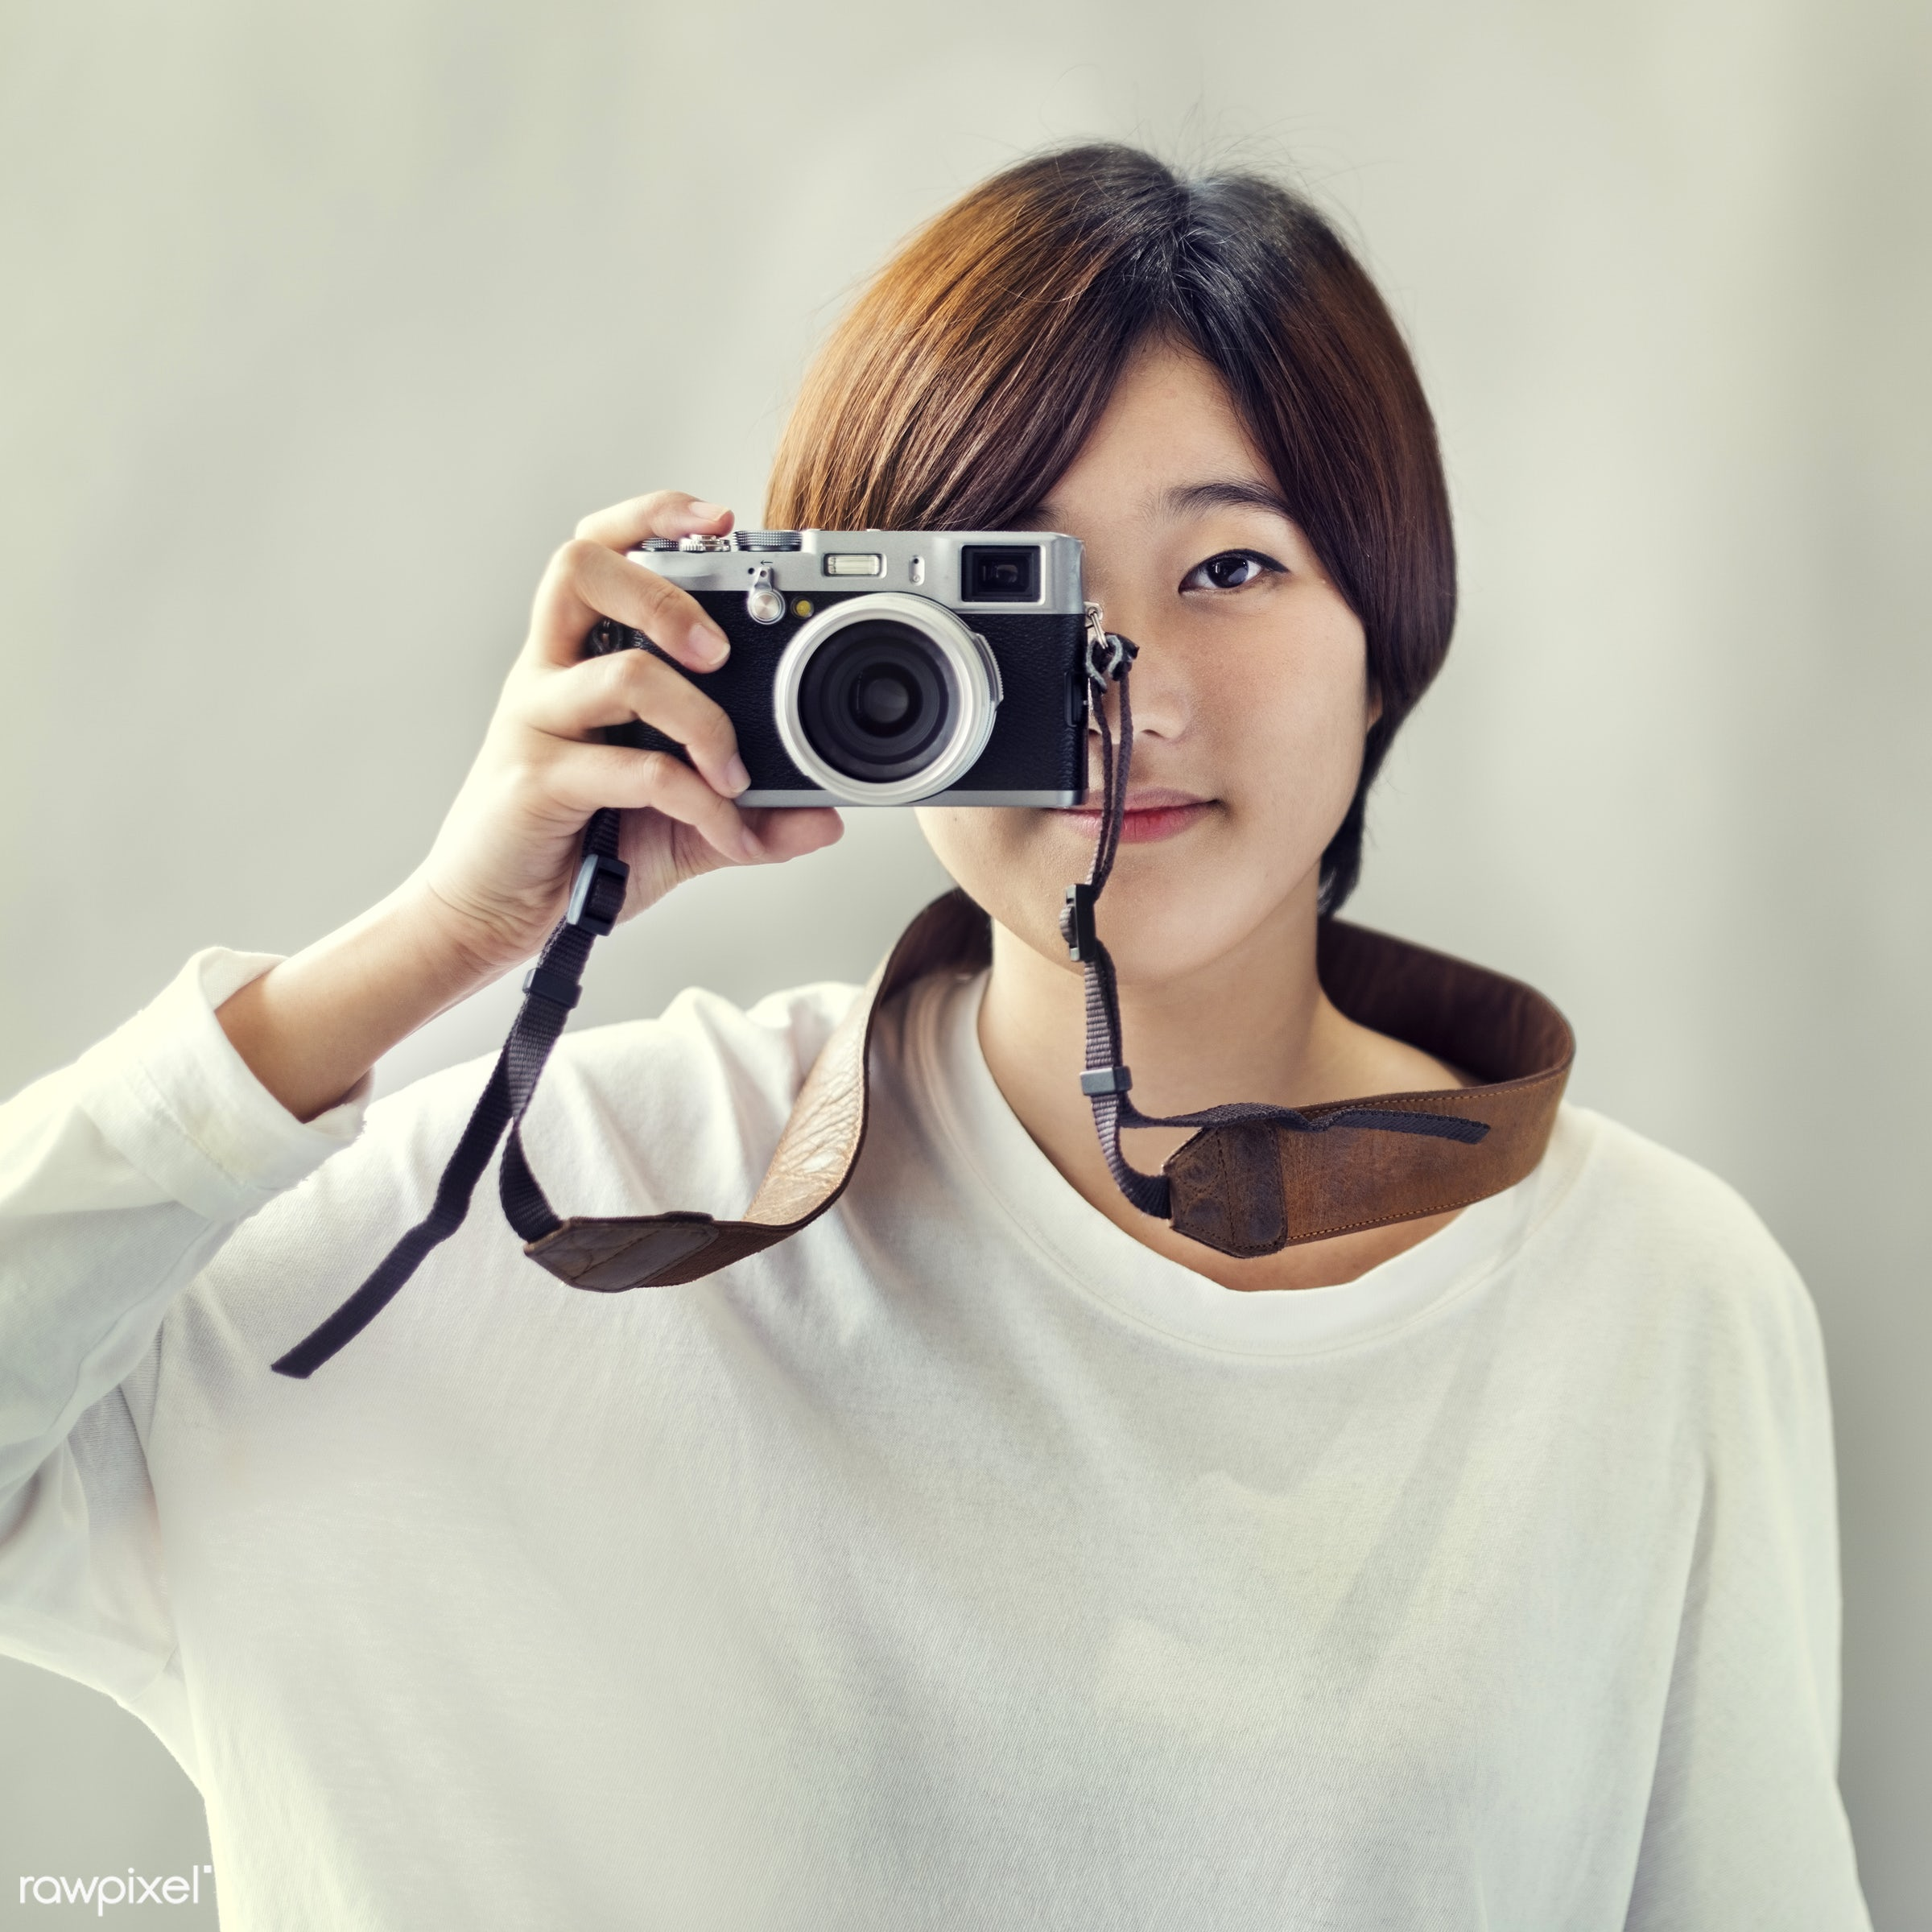 journalist, photographing, activity, asian ethnicity, attractive, beautiful, camera, casual, cheerful, confidence, female,...